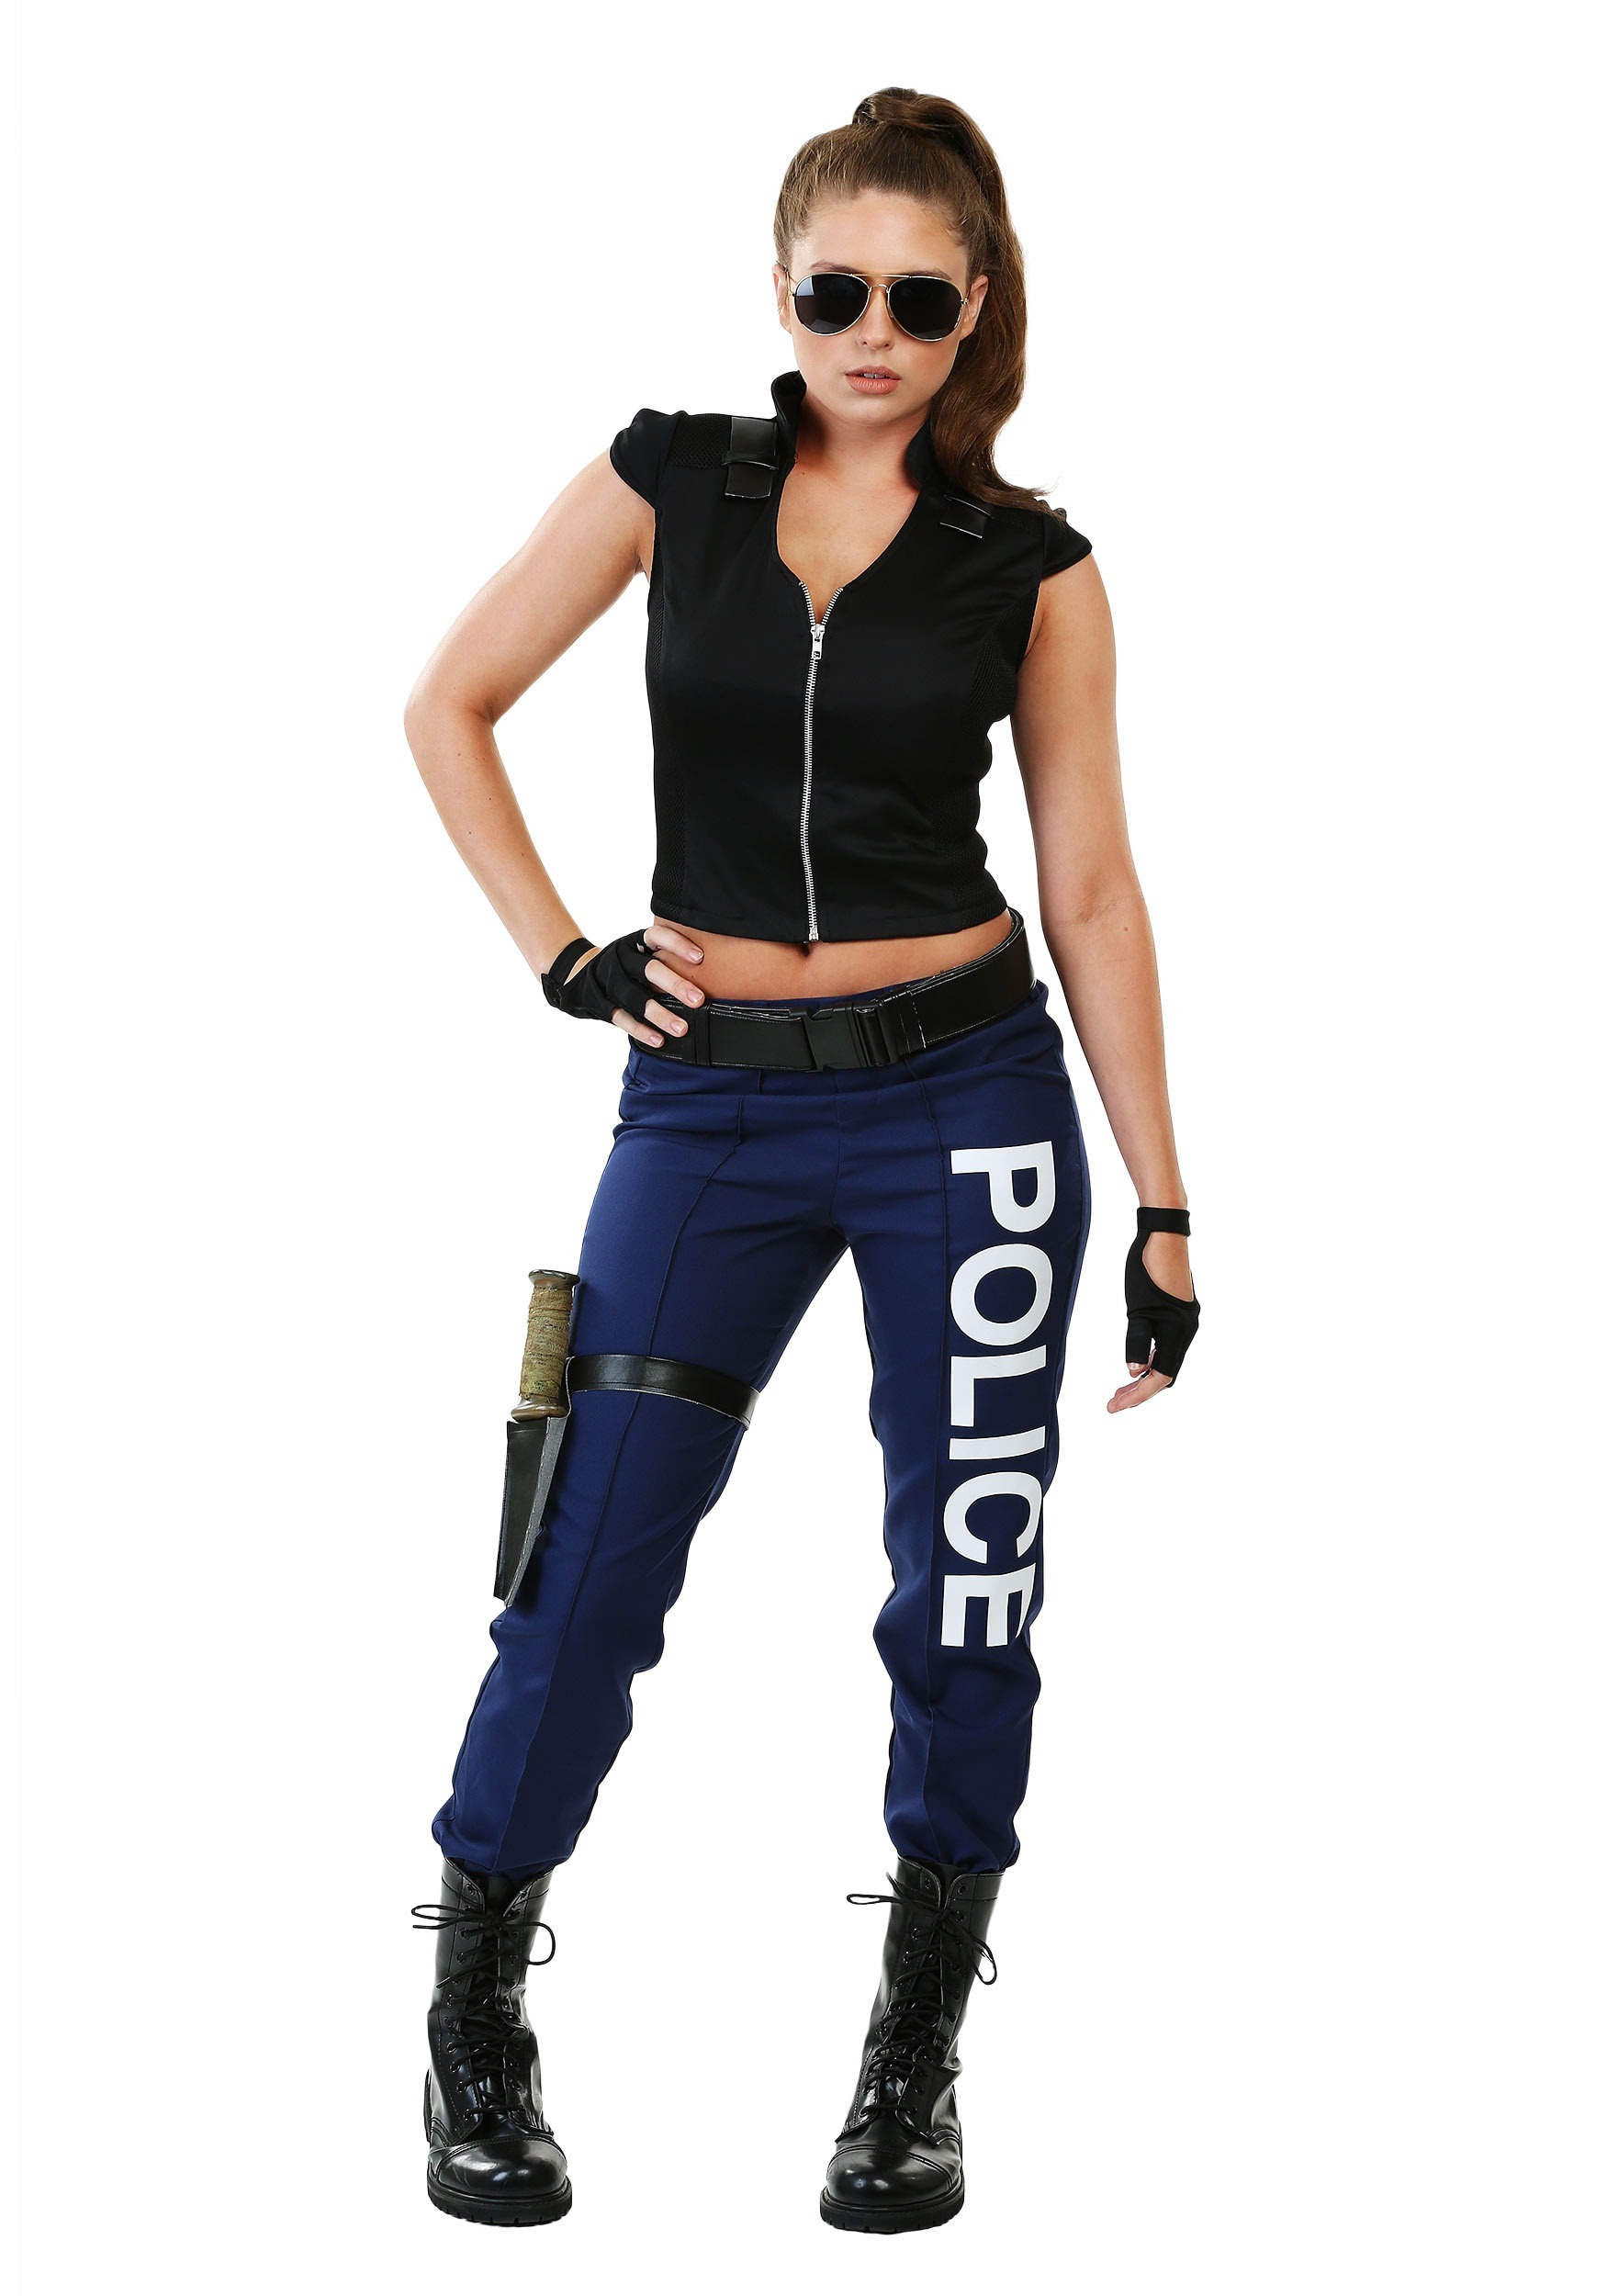 Women's Tactical Police Plus Size Costume FUN1877PL